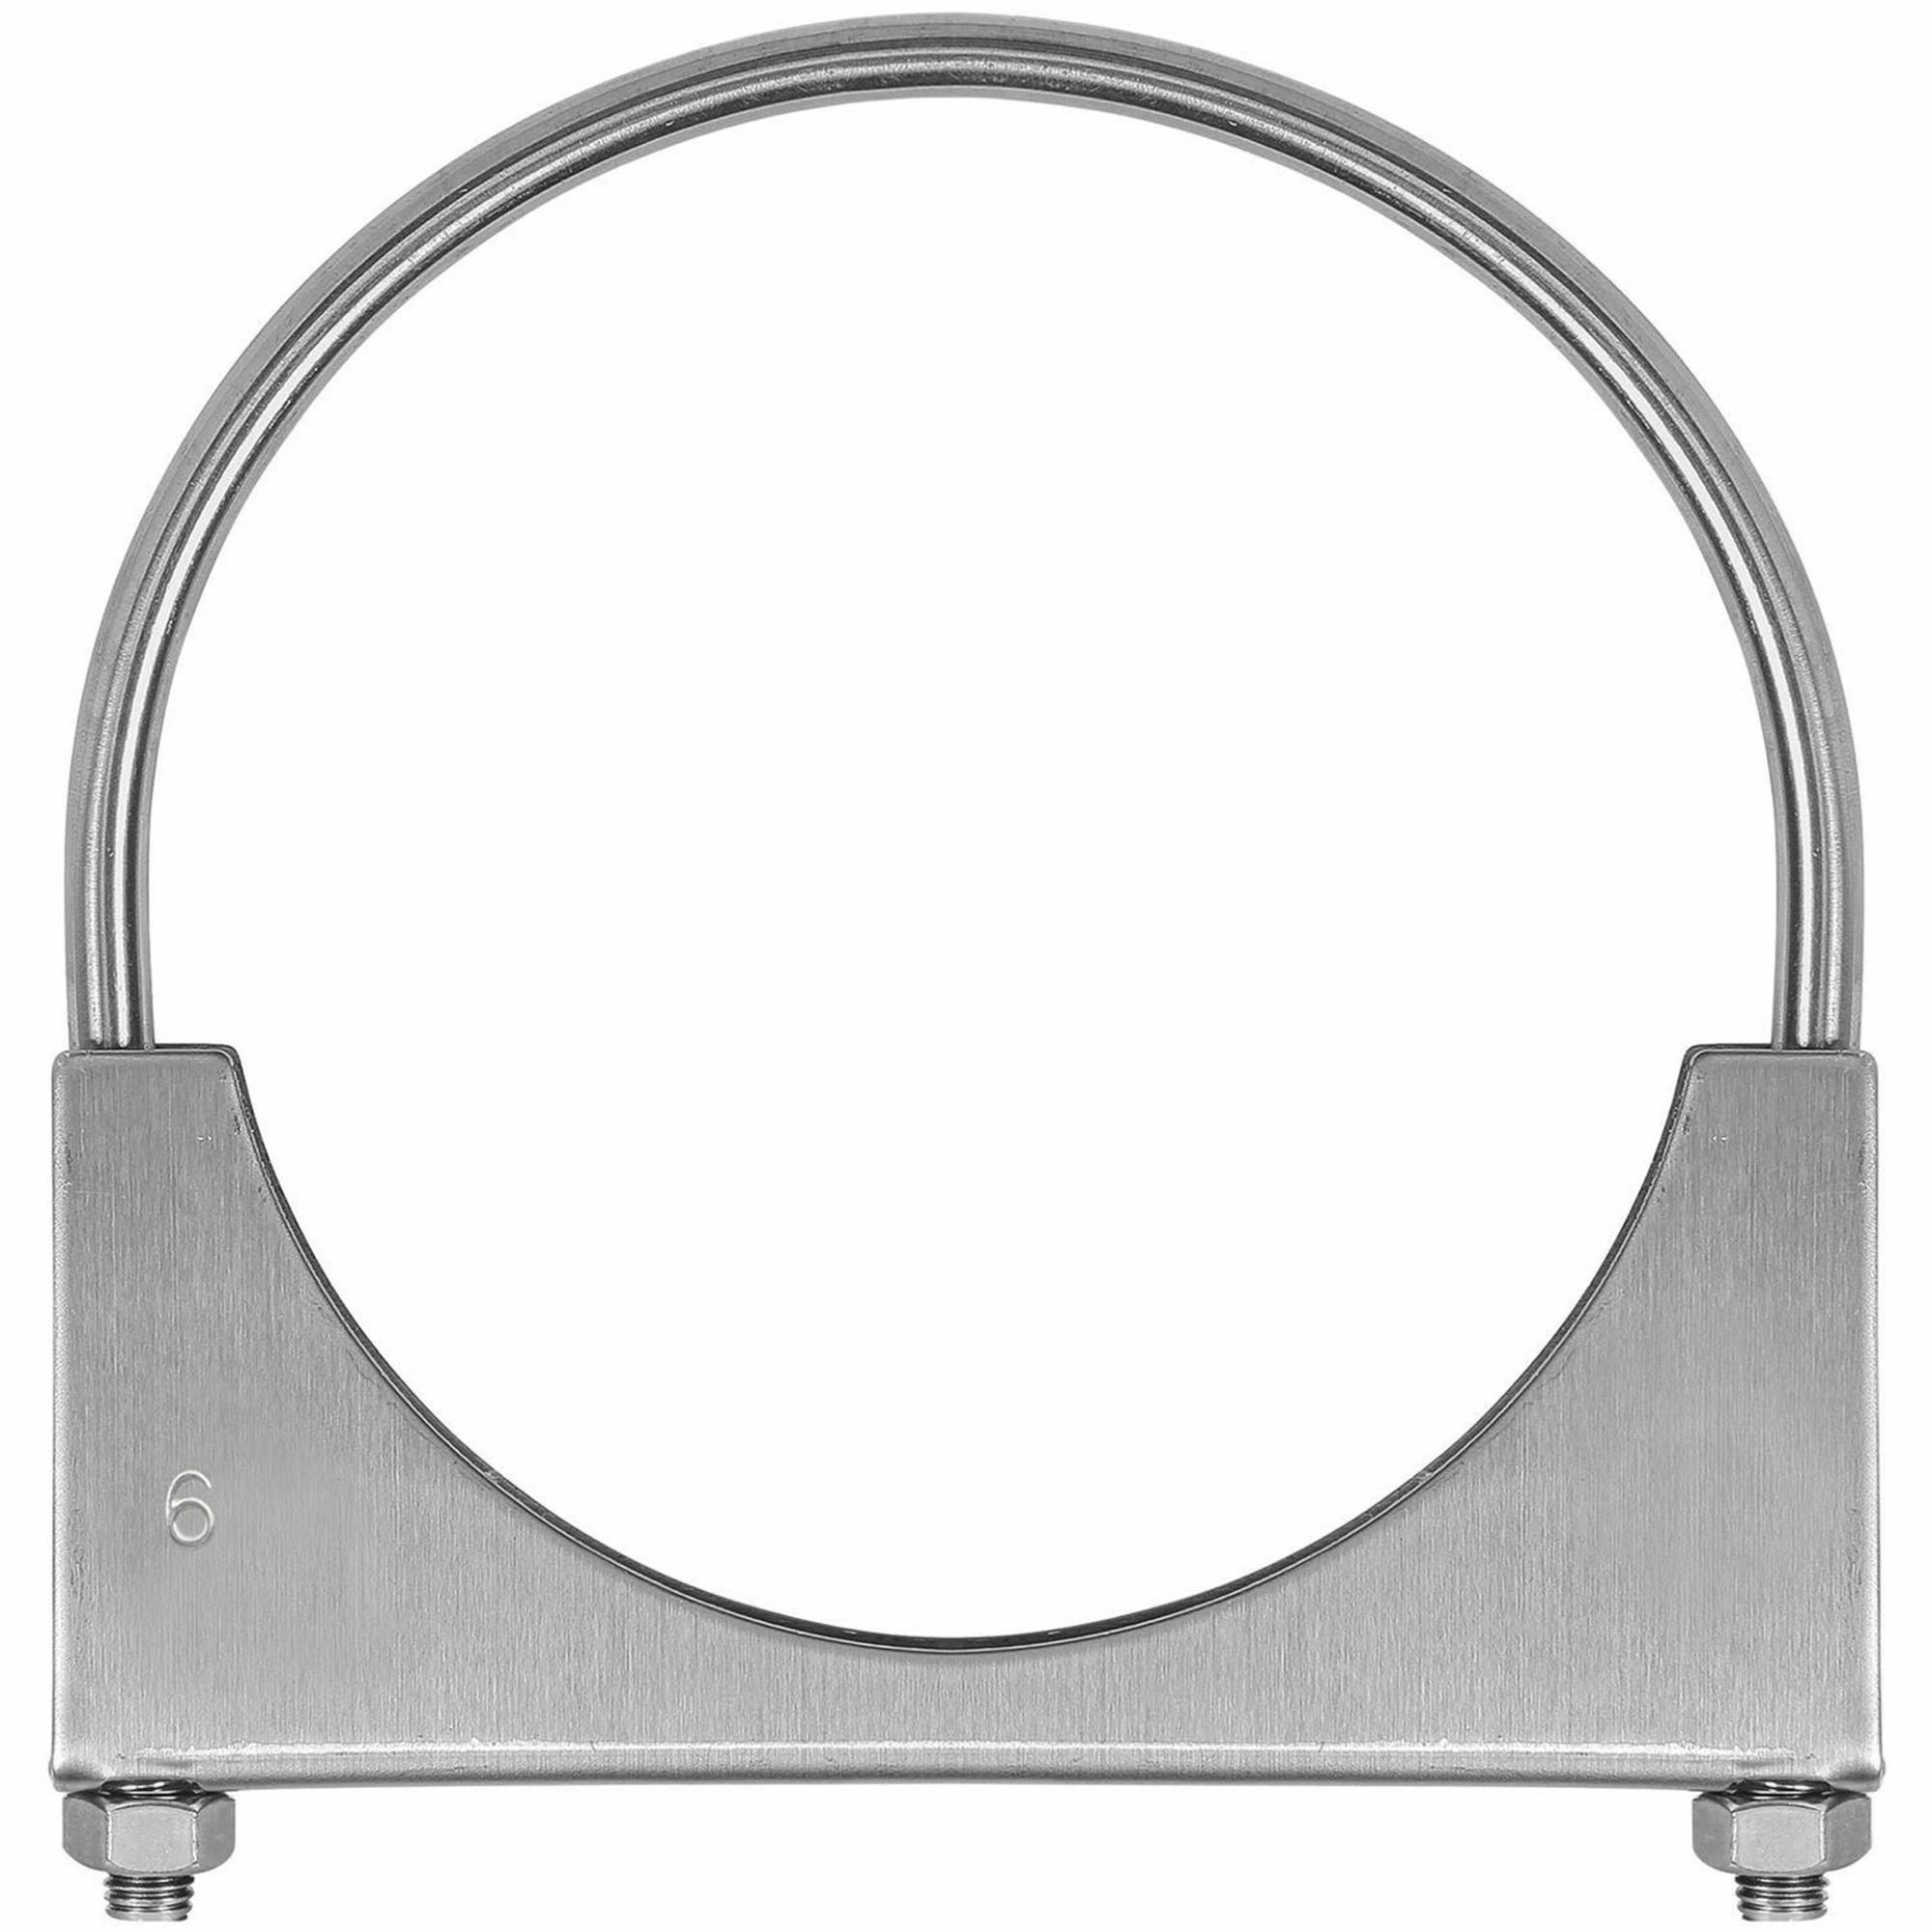 Picture of TOTALFLOW TF-U600 U-Bolt   Saddle Exhaust Muffler Clamp Band   6 Inch